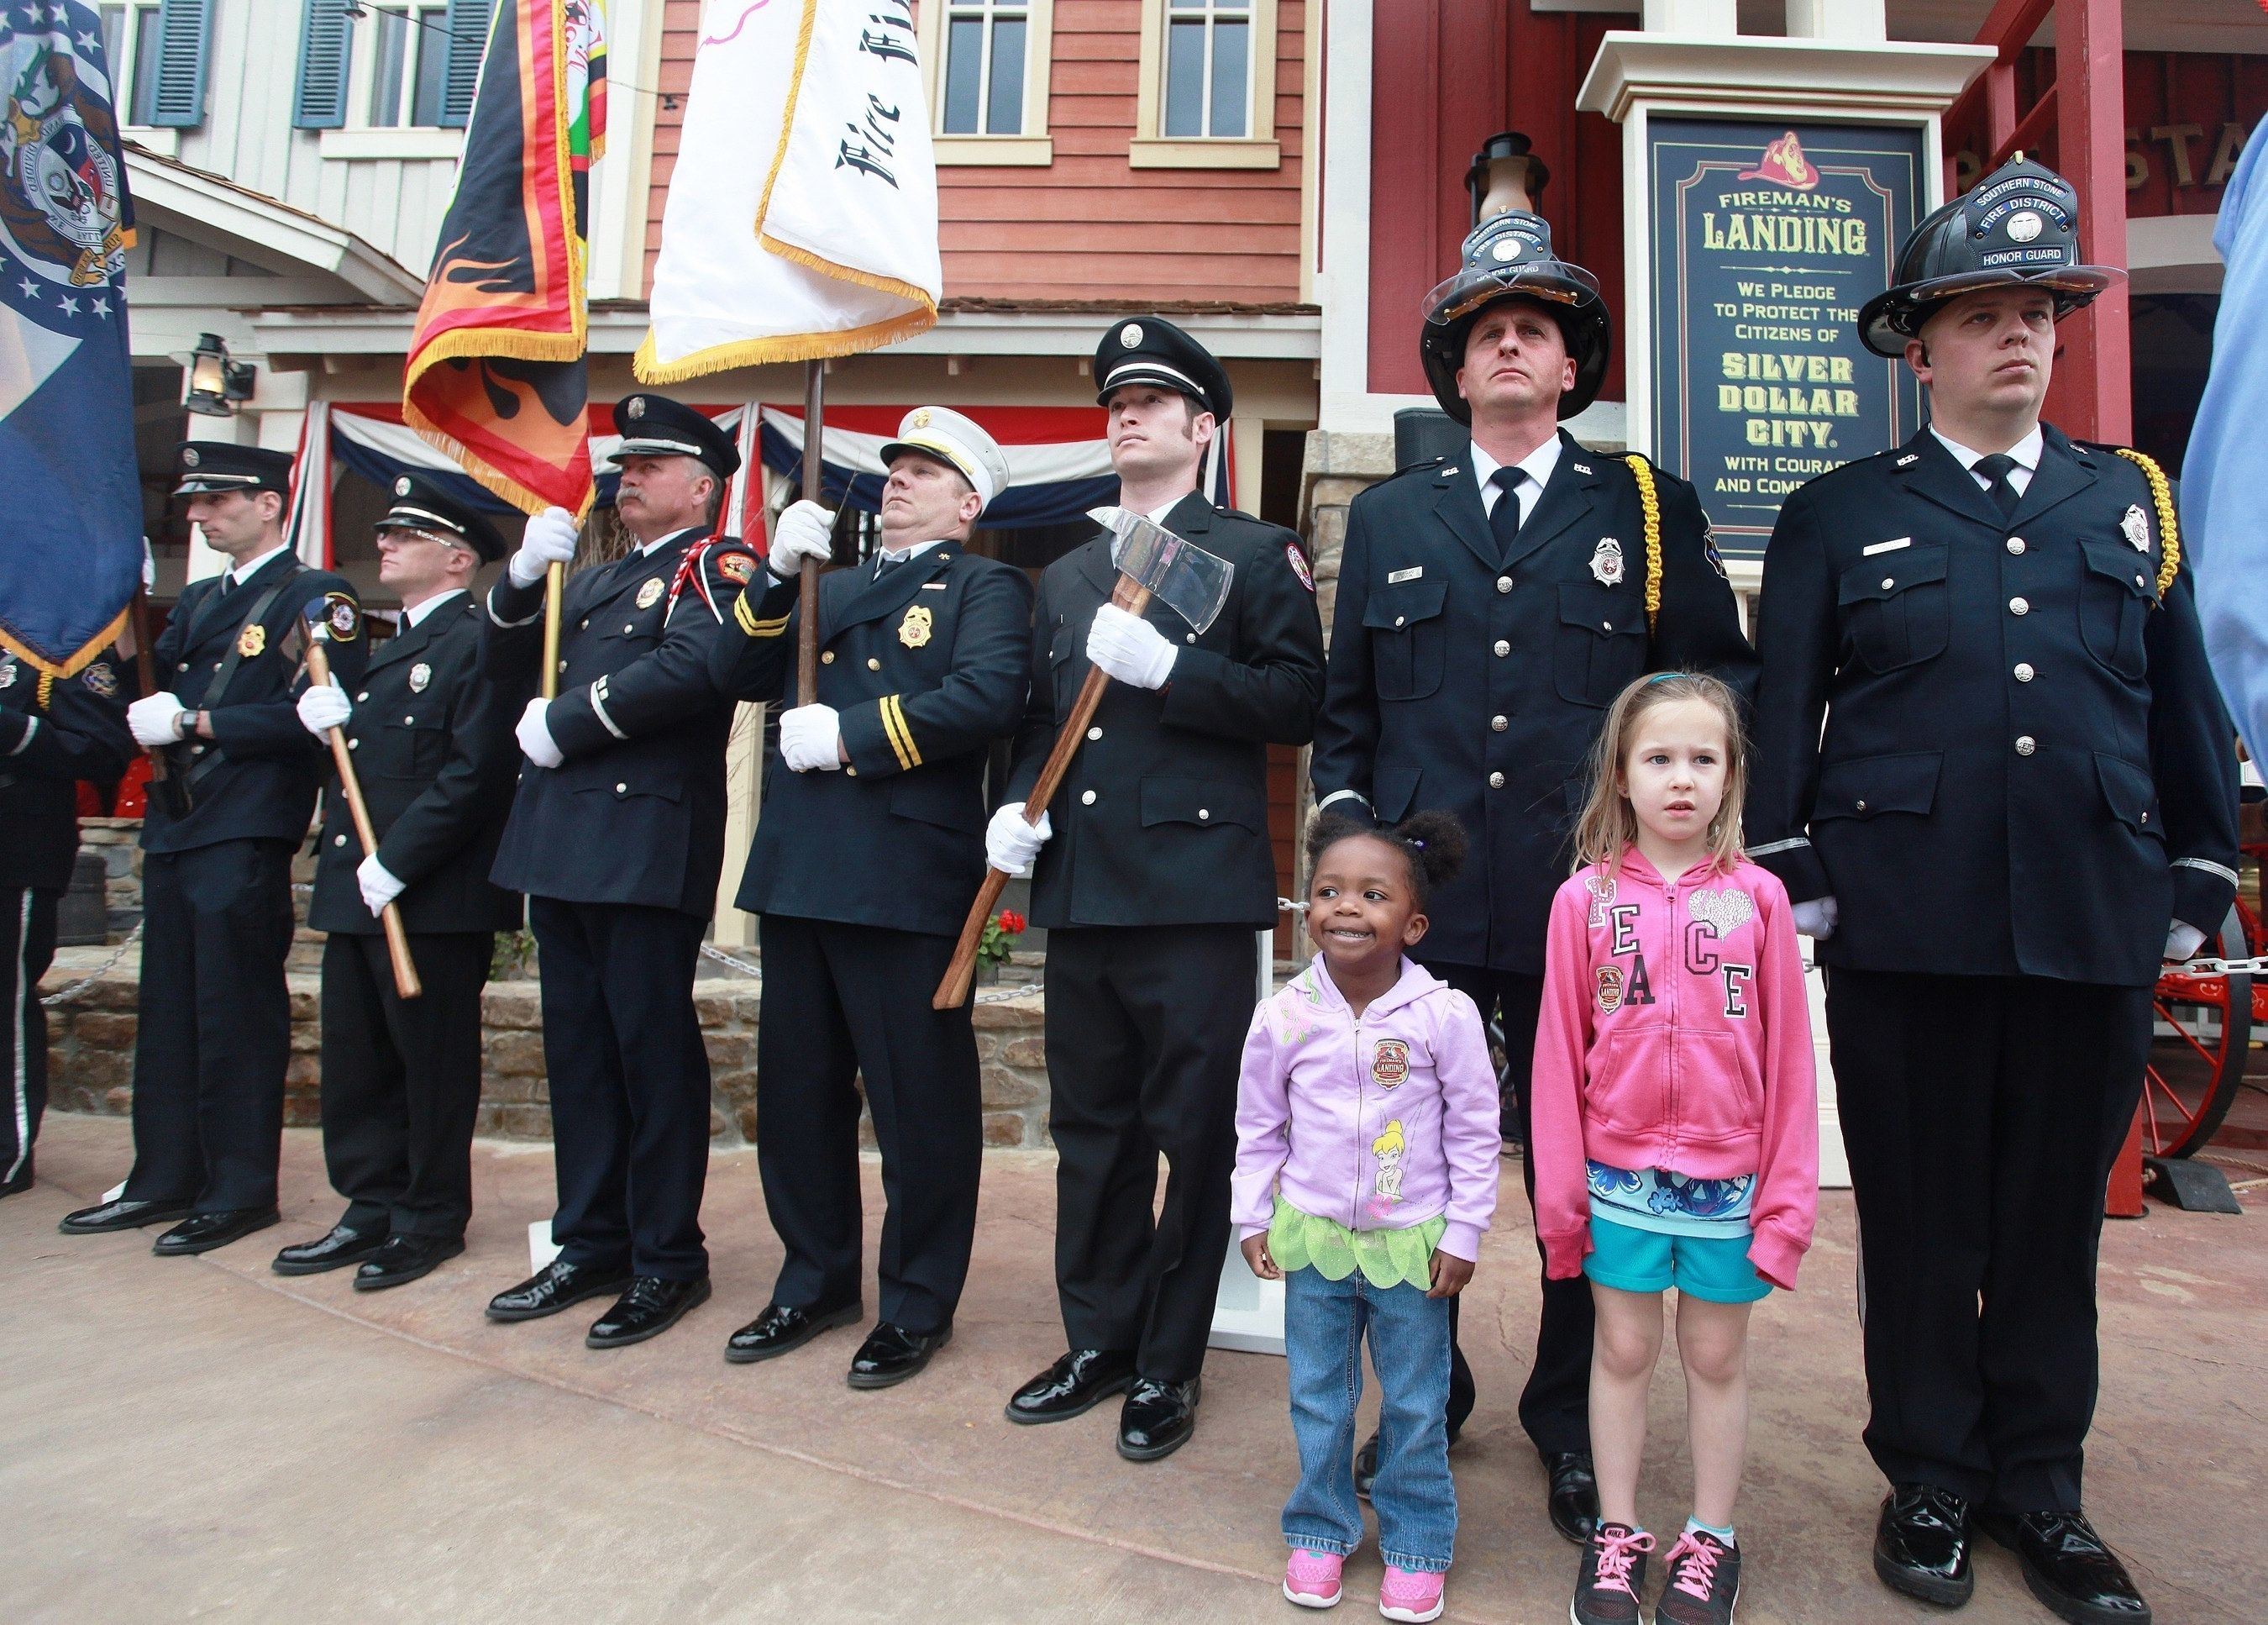 Kids join firefighters to take the Firefighter's Pledge at the grand opening of Fireman's Landing at Silver Dollar City in Branson, Missouri.